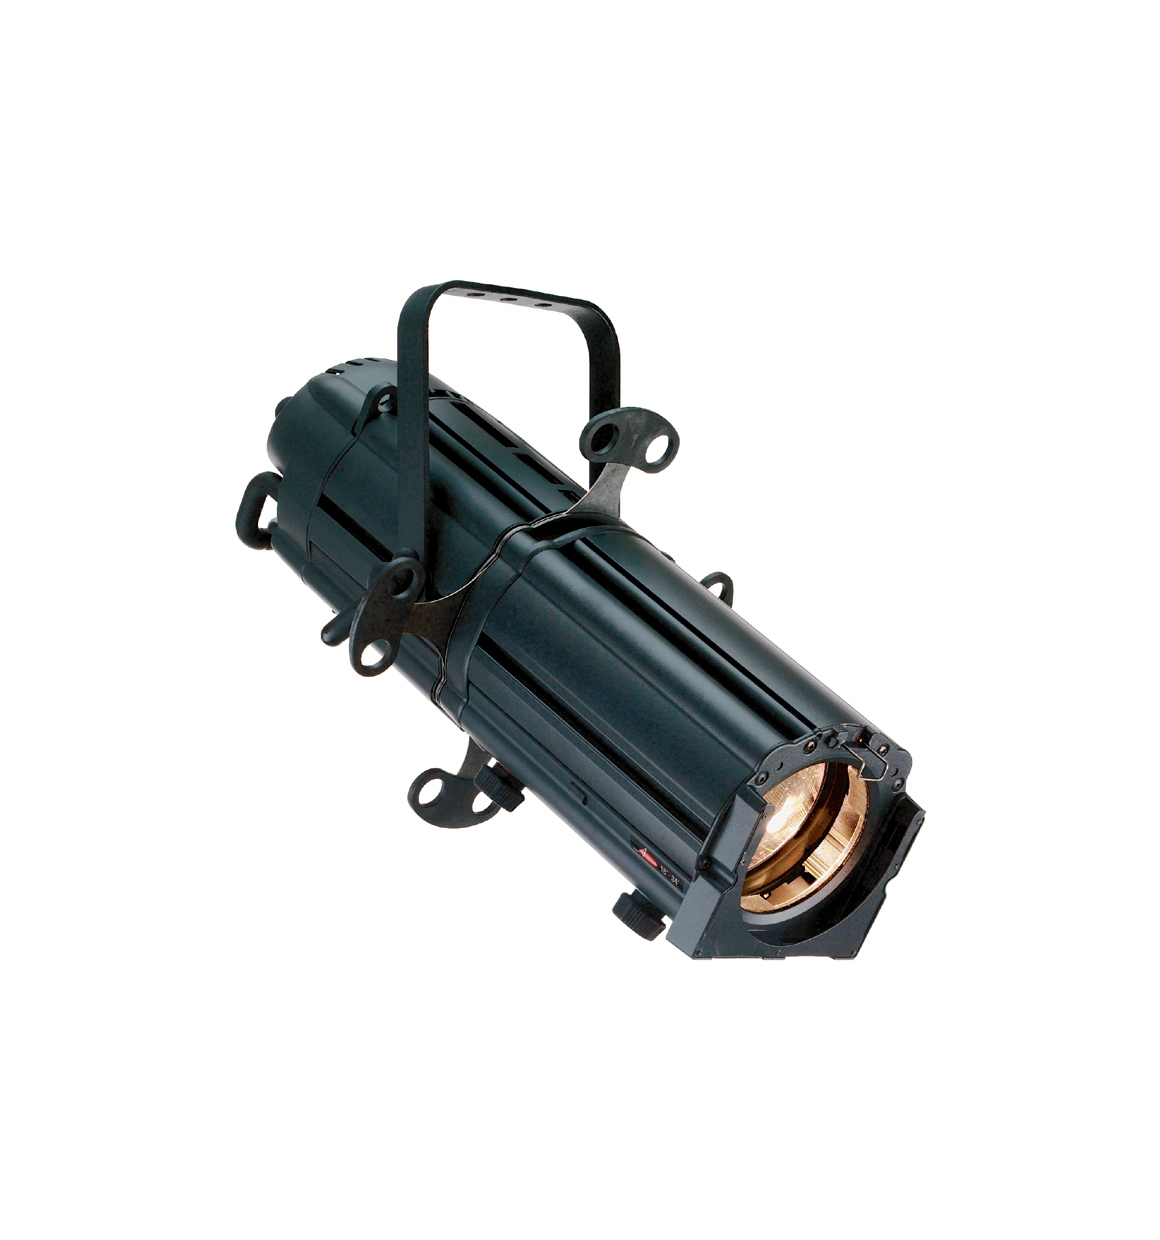 Commercial Lighting Hire: Selecon Acclaim Axial 18/34 600w Profile